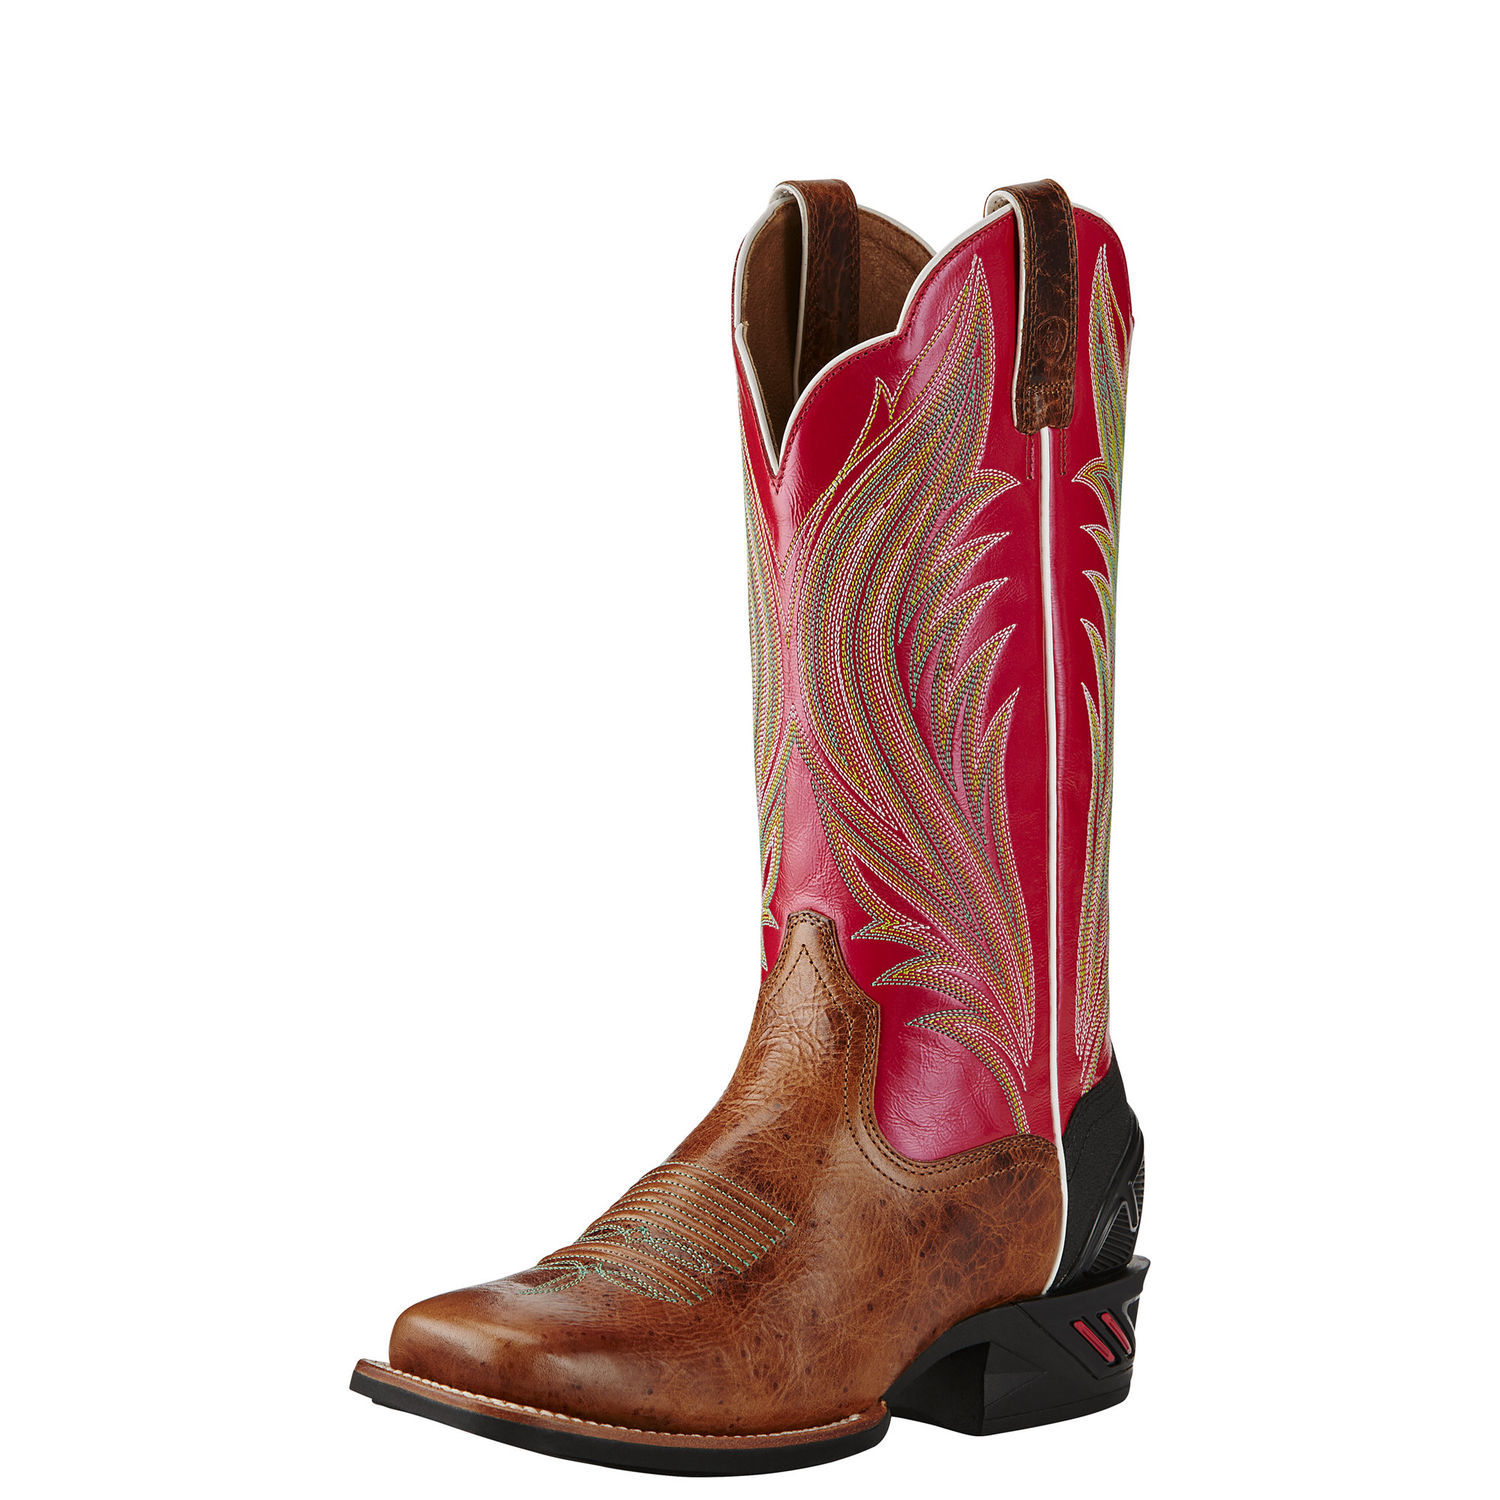 Ariat Catalyst Prime Women Square Toe Leather Pink Western Boot by Ariat